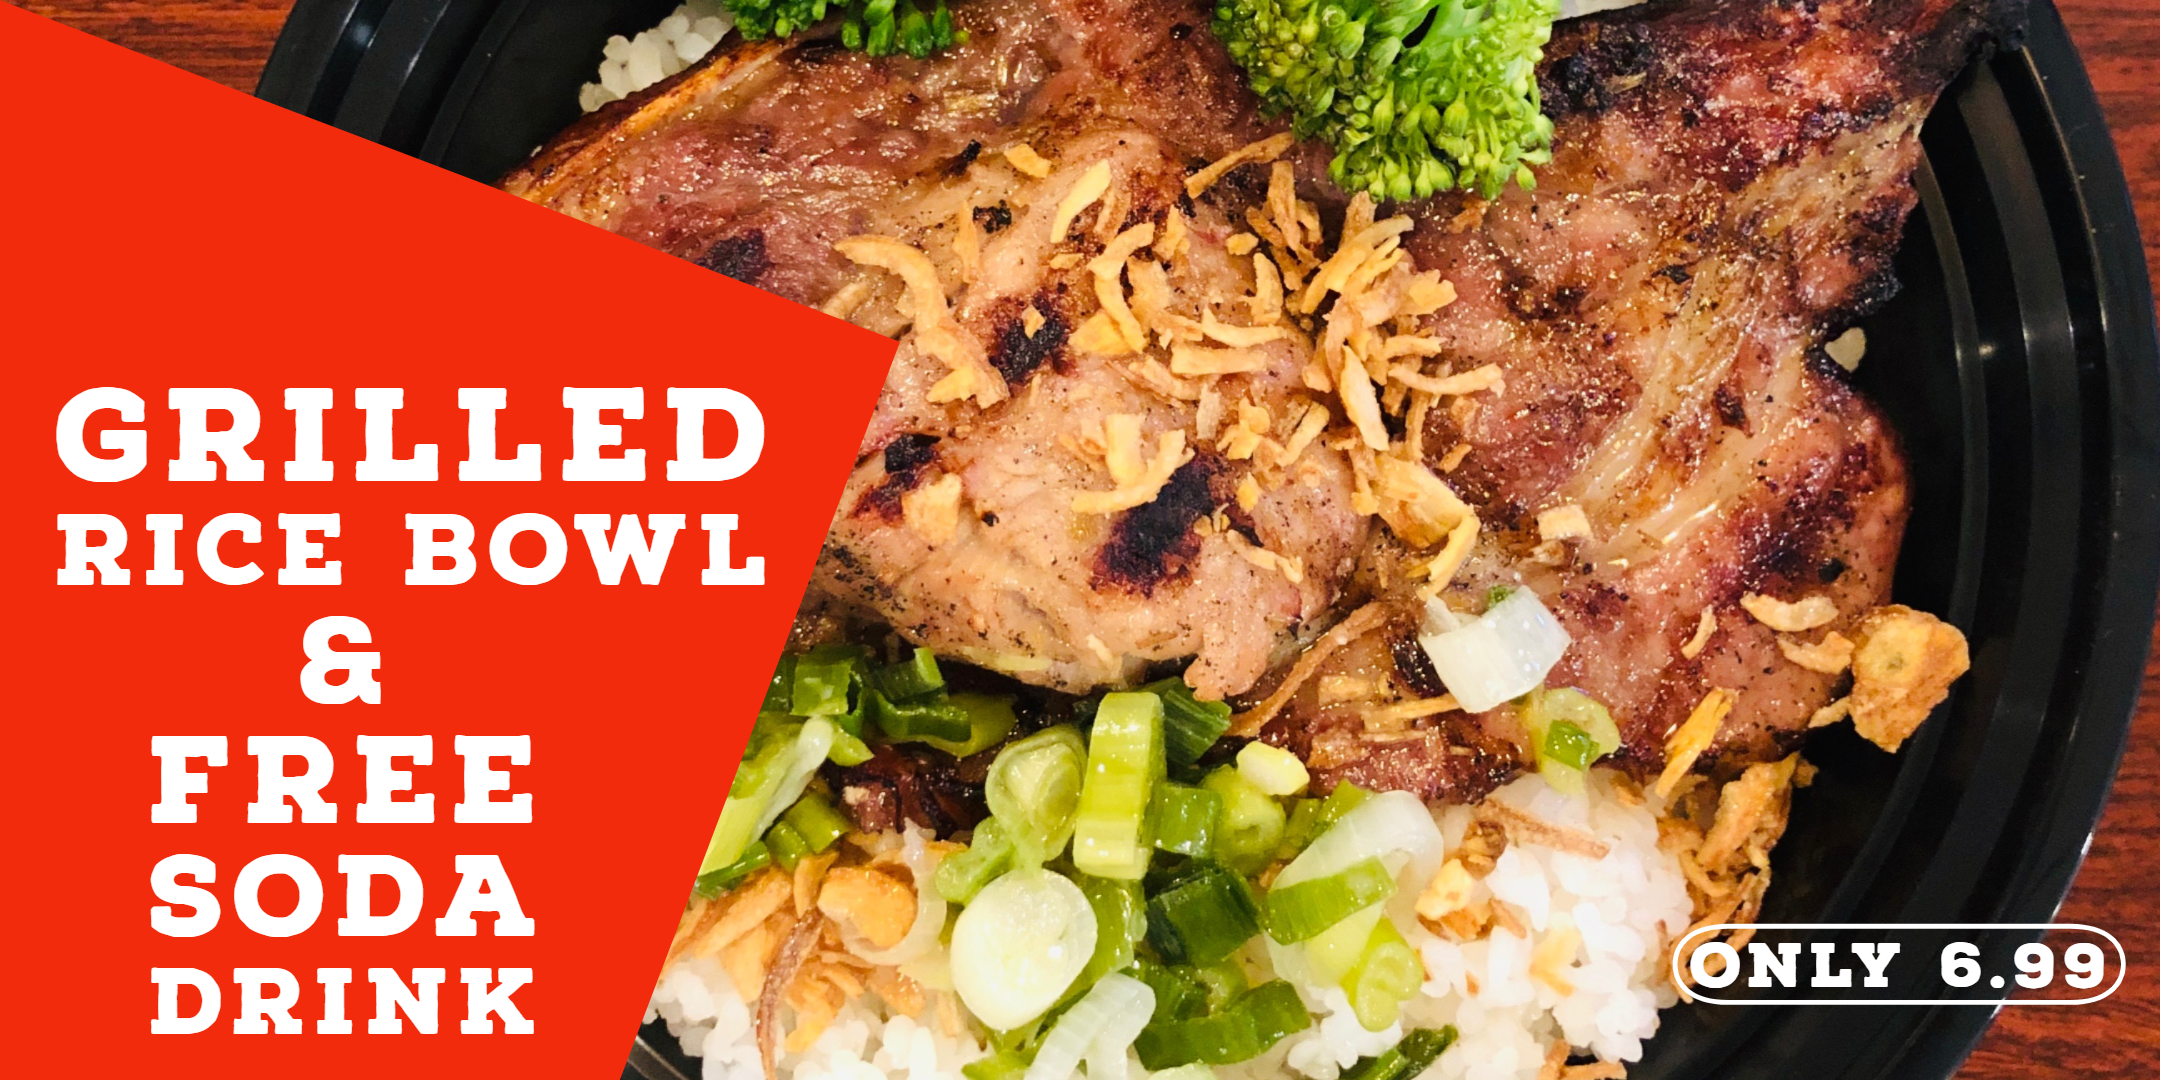 FREE SODA DRINK IN MAY-2019 - Ask us for a free soda drink (refill) when you try our new rice bowl grilled meat in May-2019.